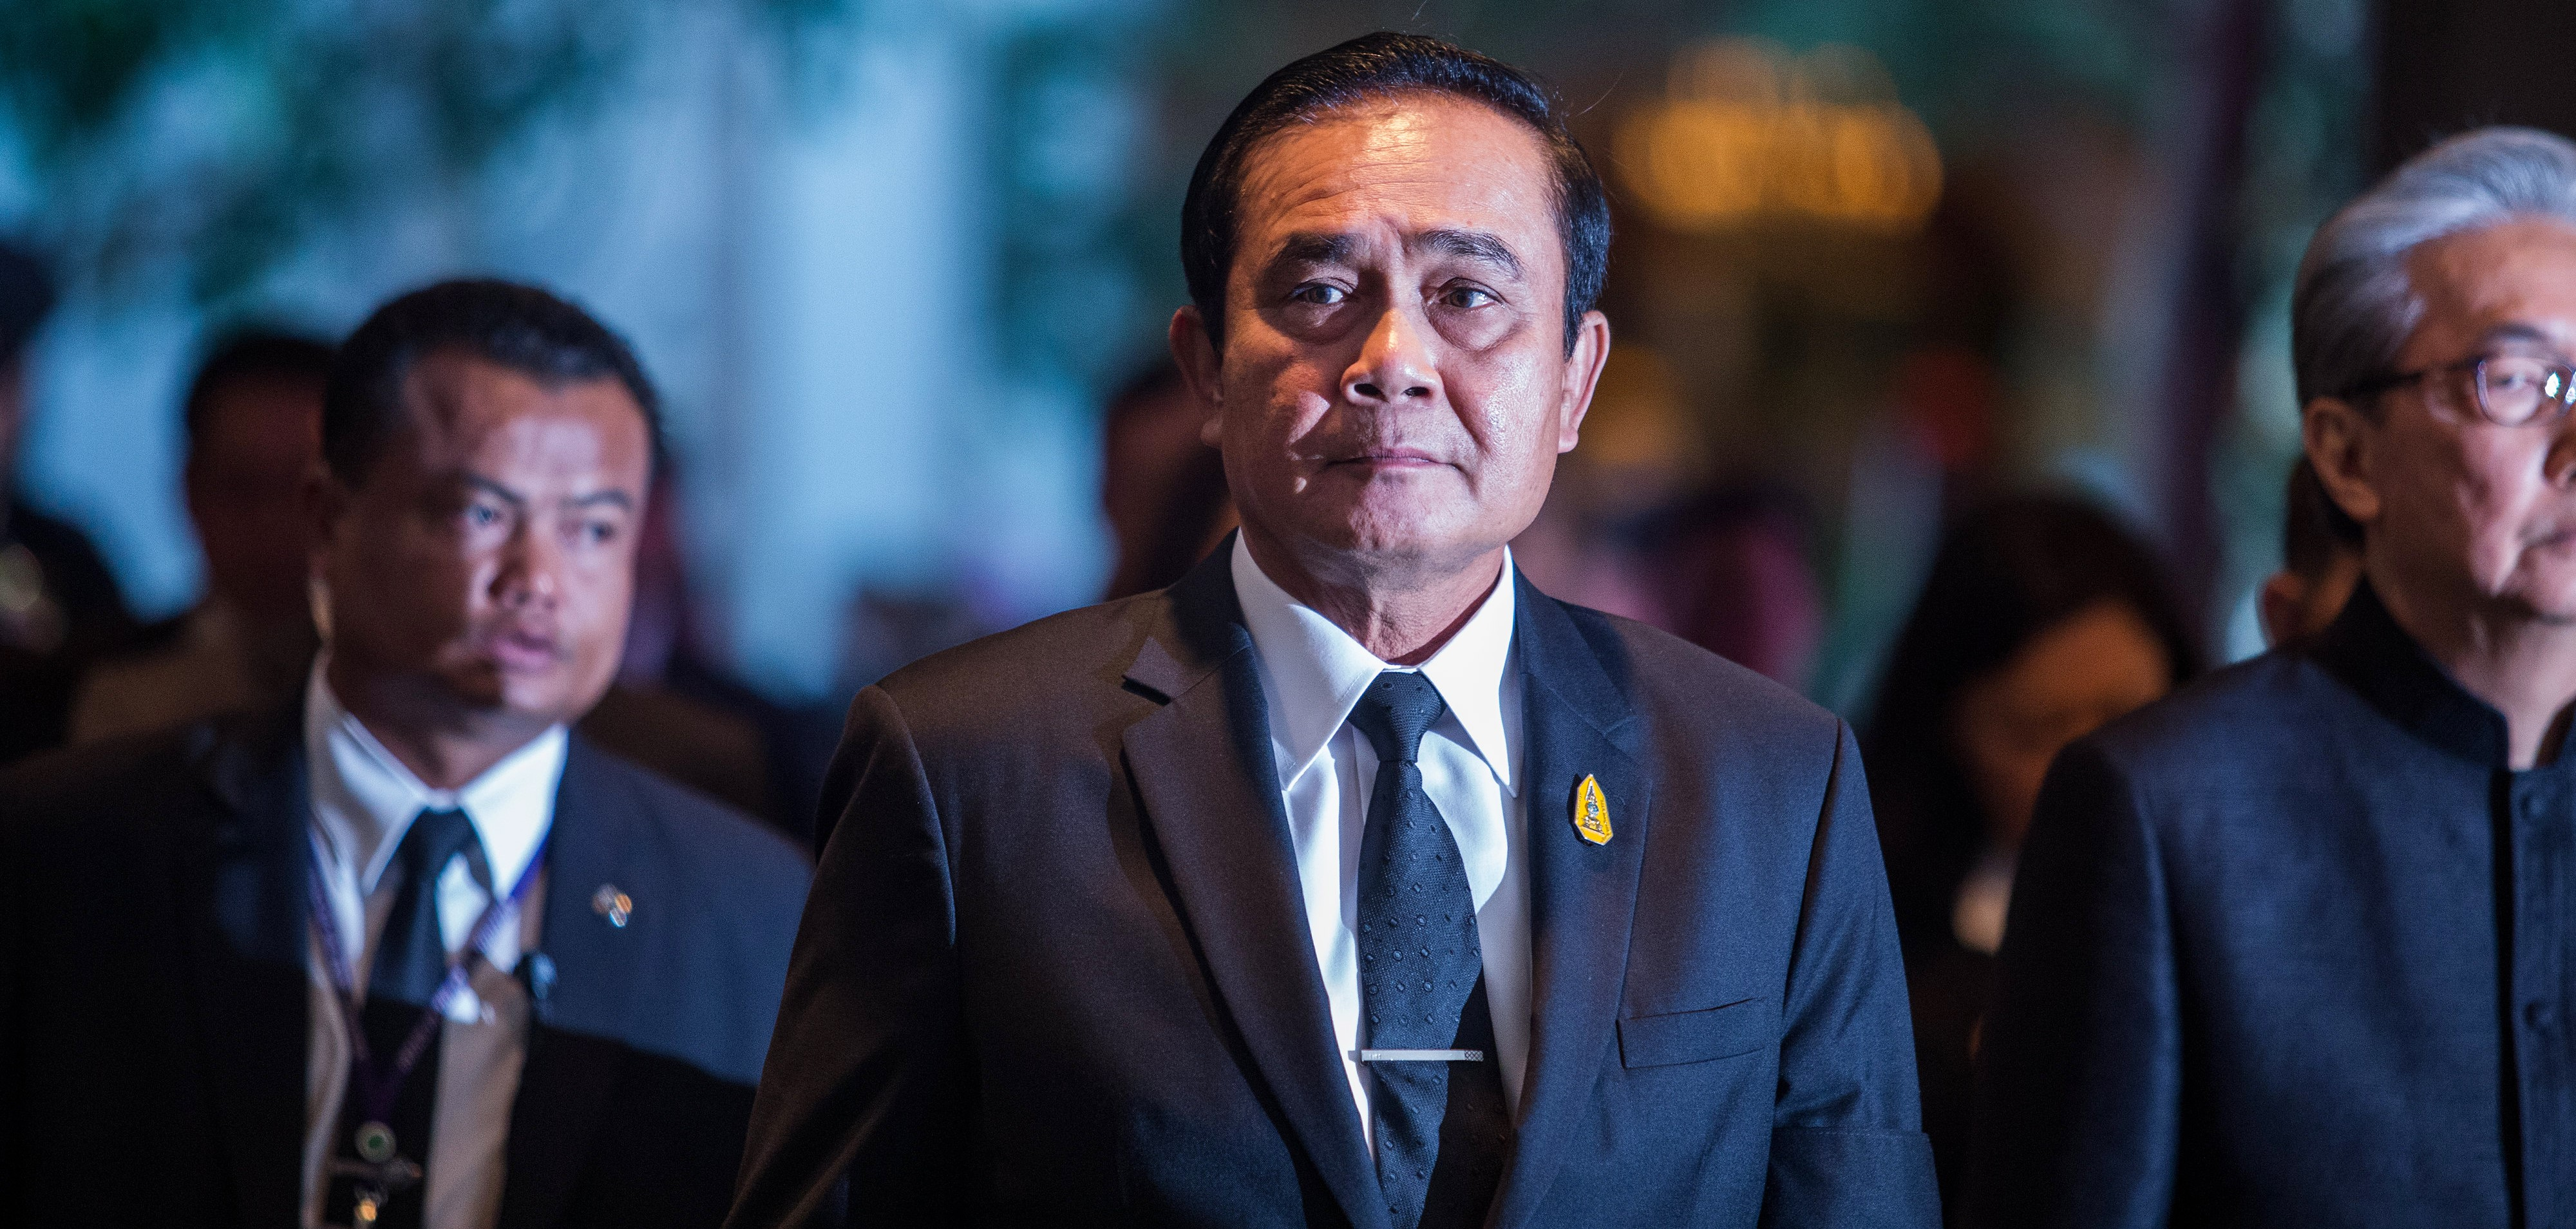 General Prayut Chan-Ocha, June 2017 (Photo: Getty Images/Bloomberg)